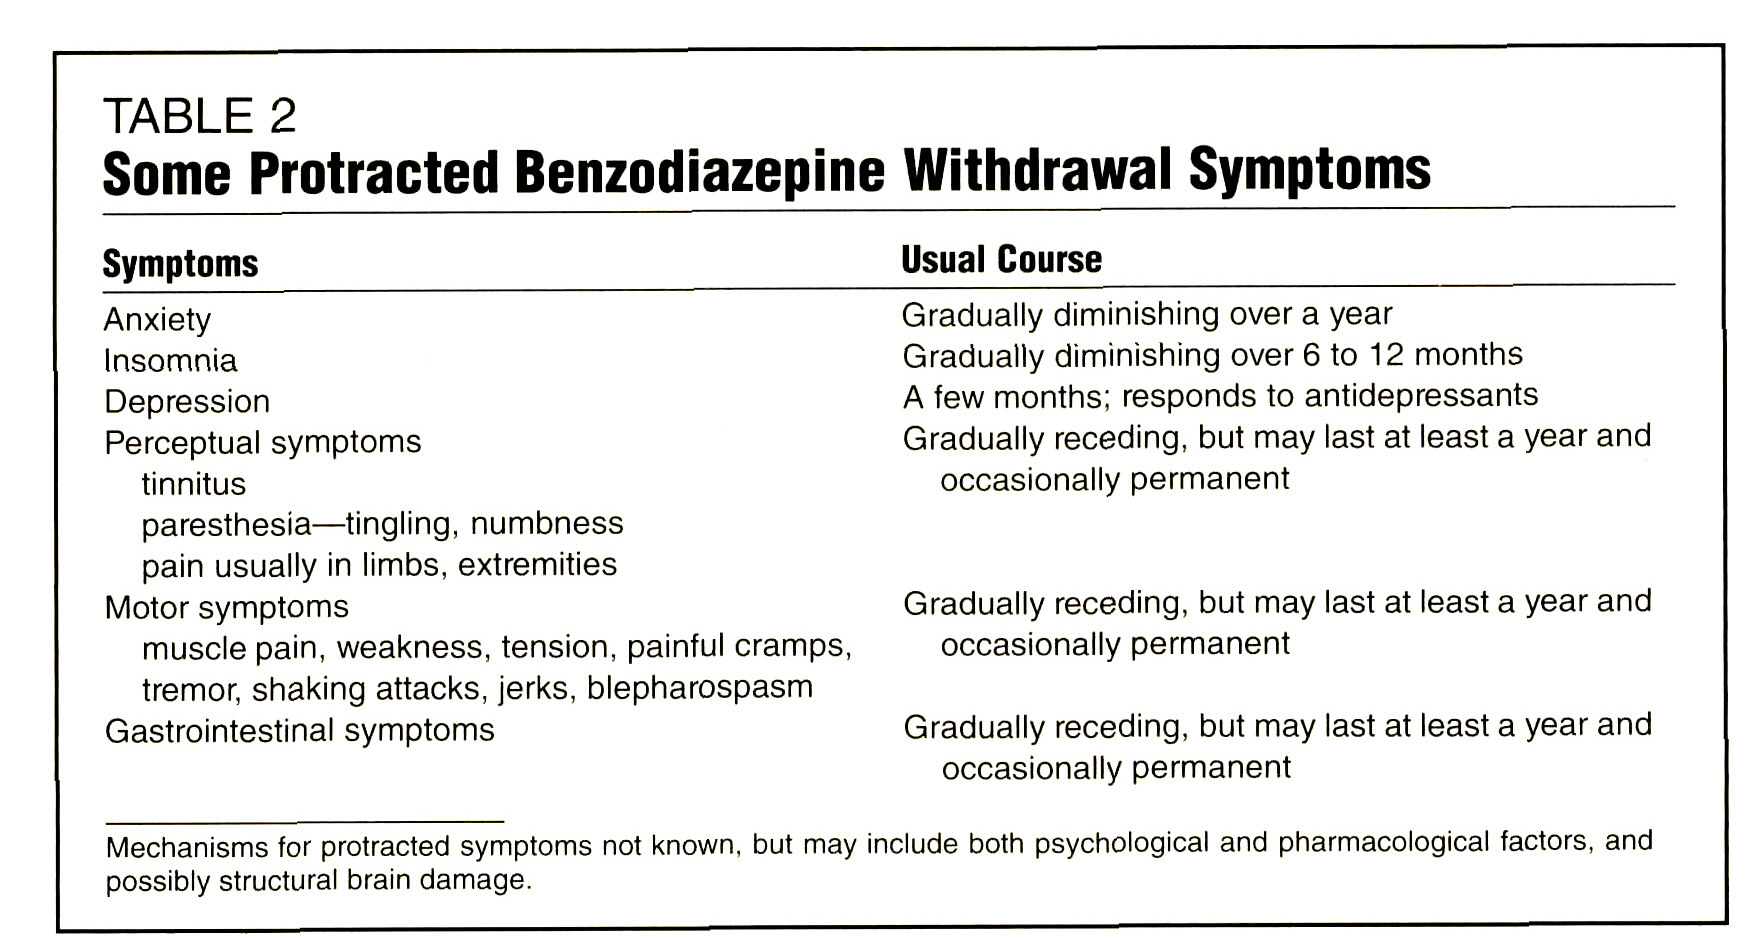 Protracted Withdrawal From Benzodiazepines: The Post-Withdrawal Syndrome